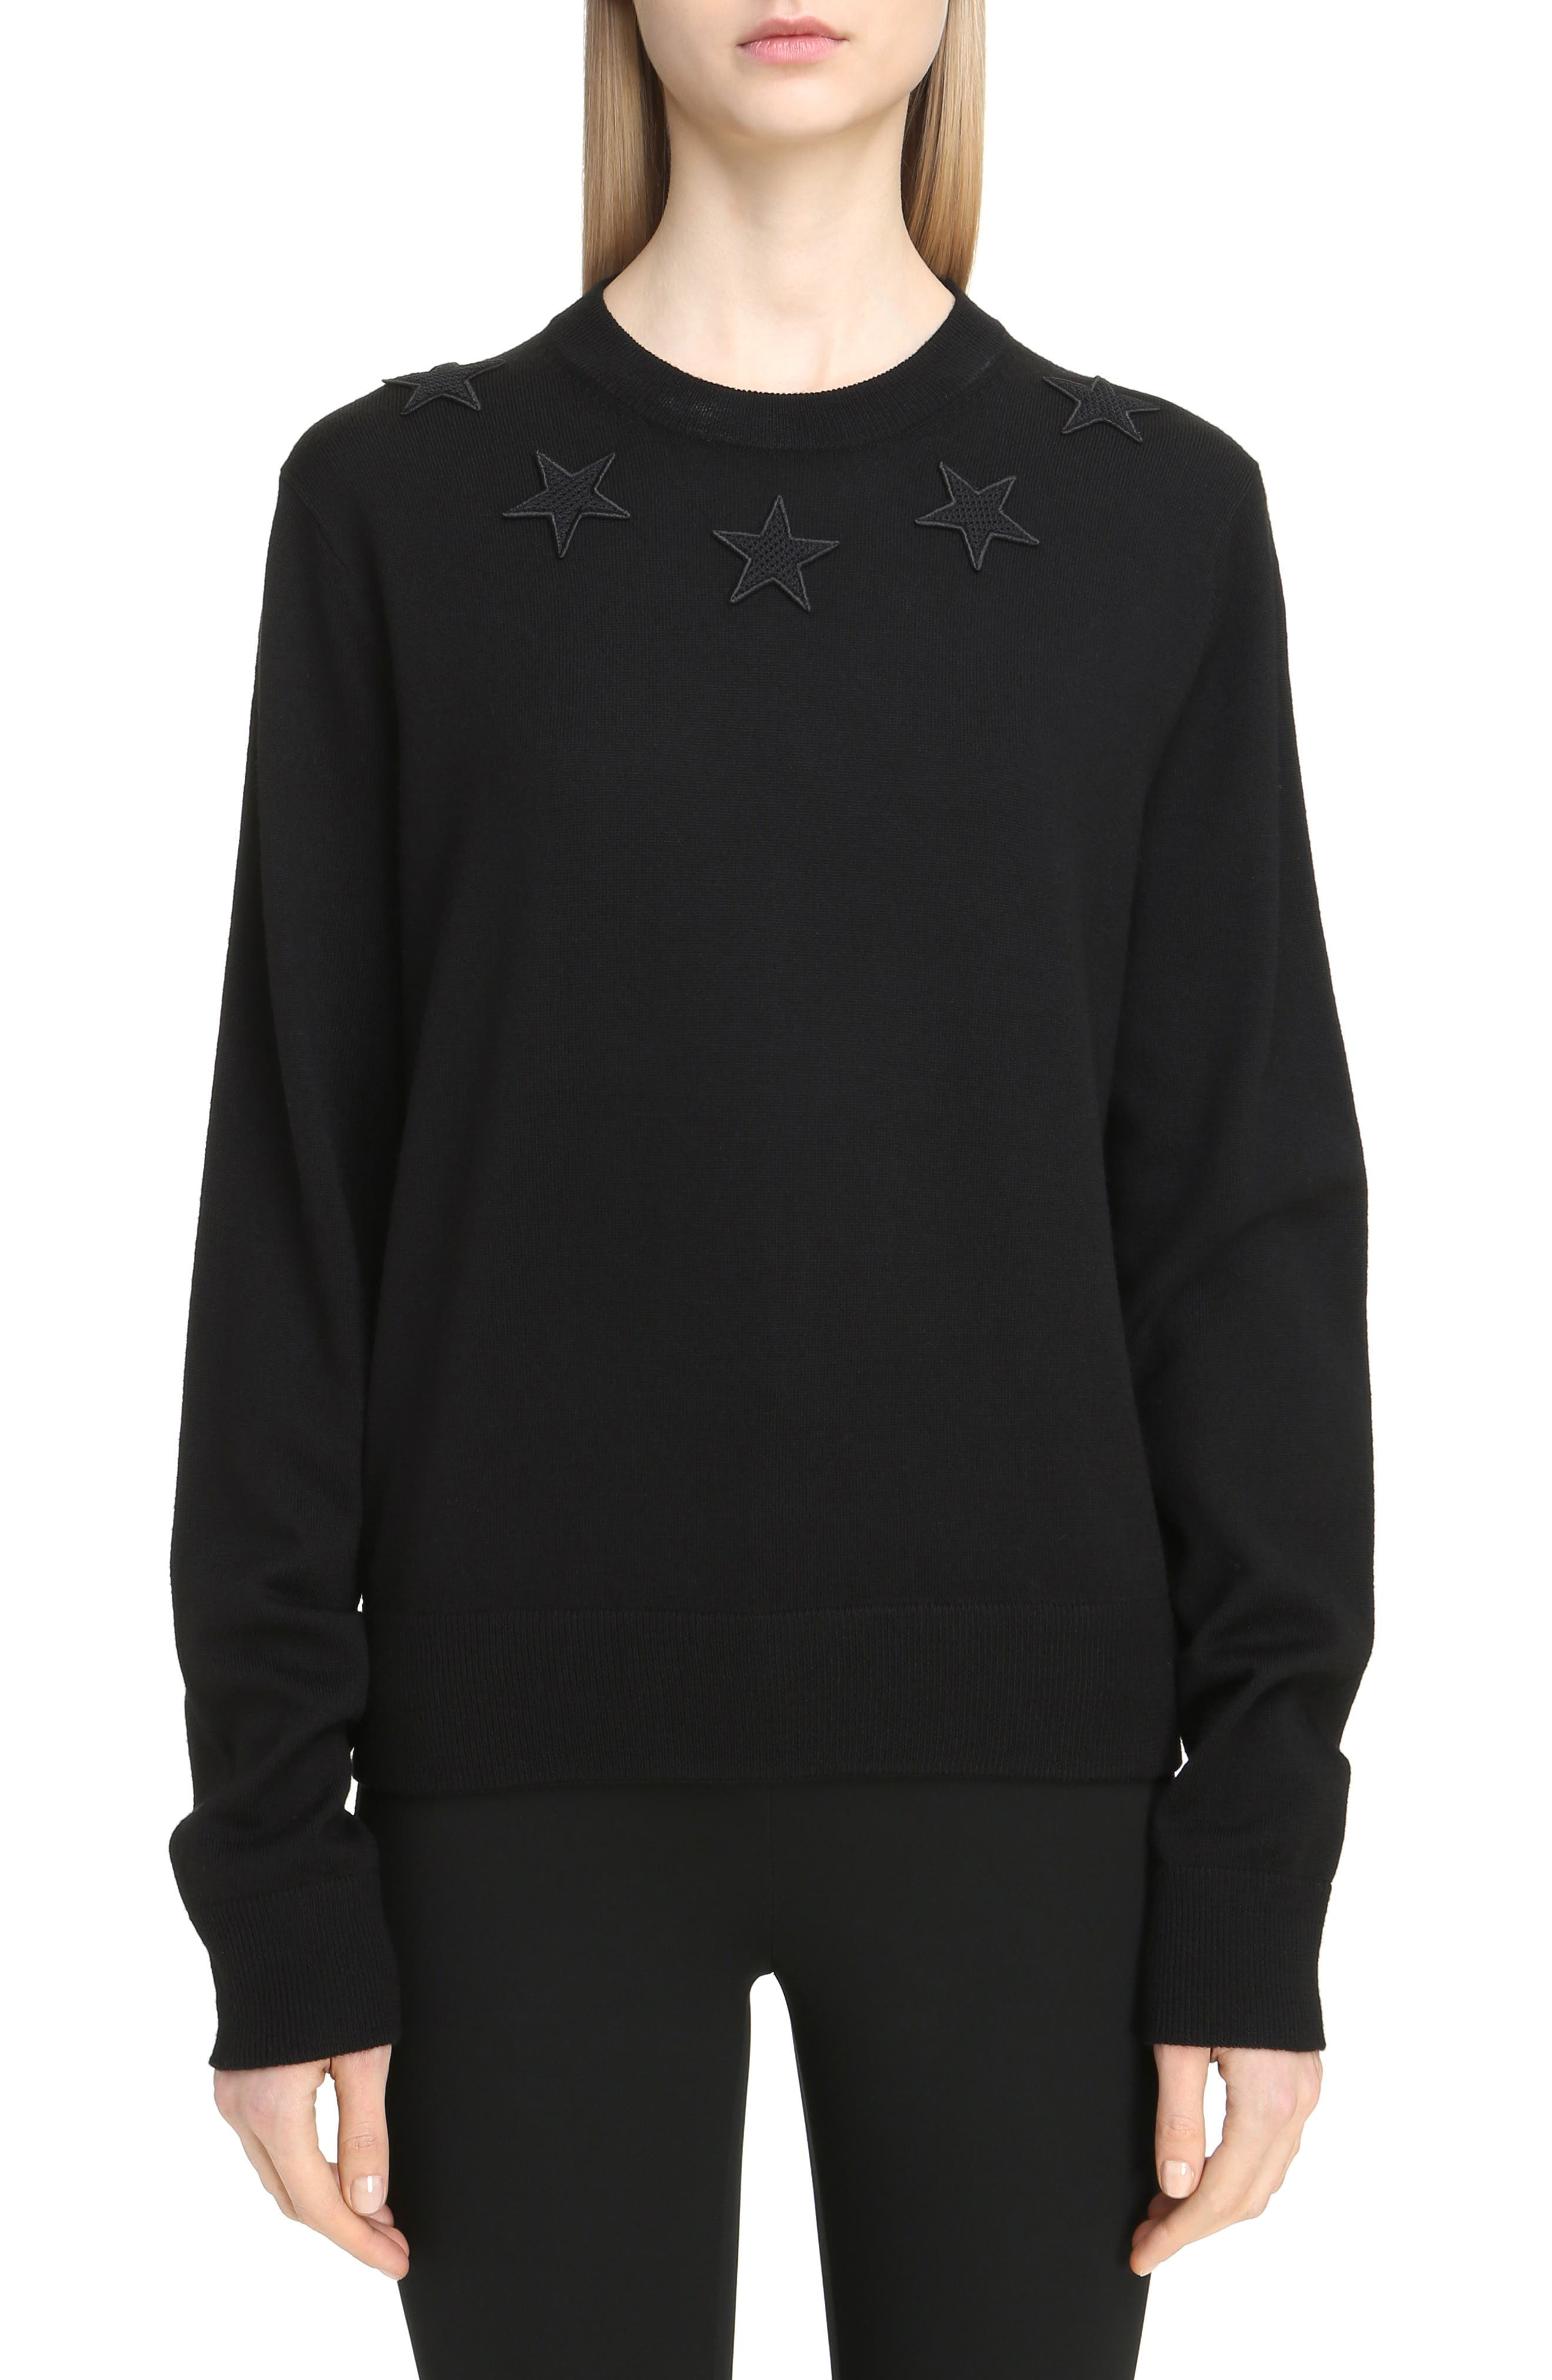 Main Image - Givenchy Star Embellished Wool Sweater